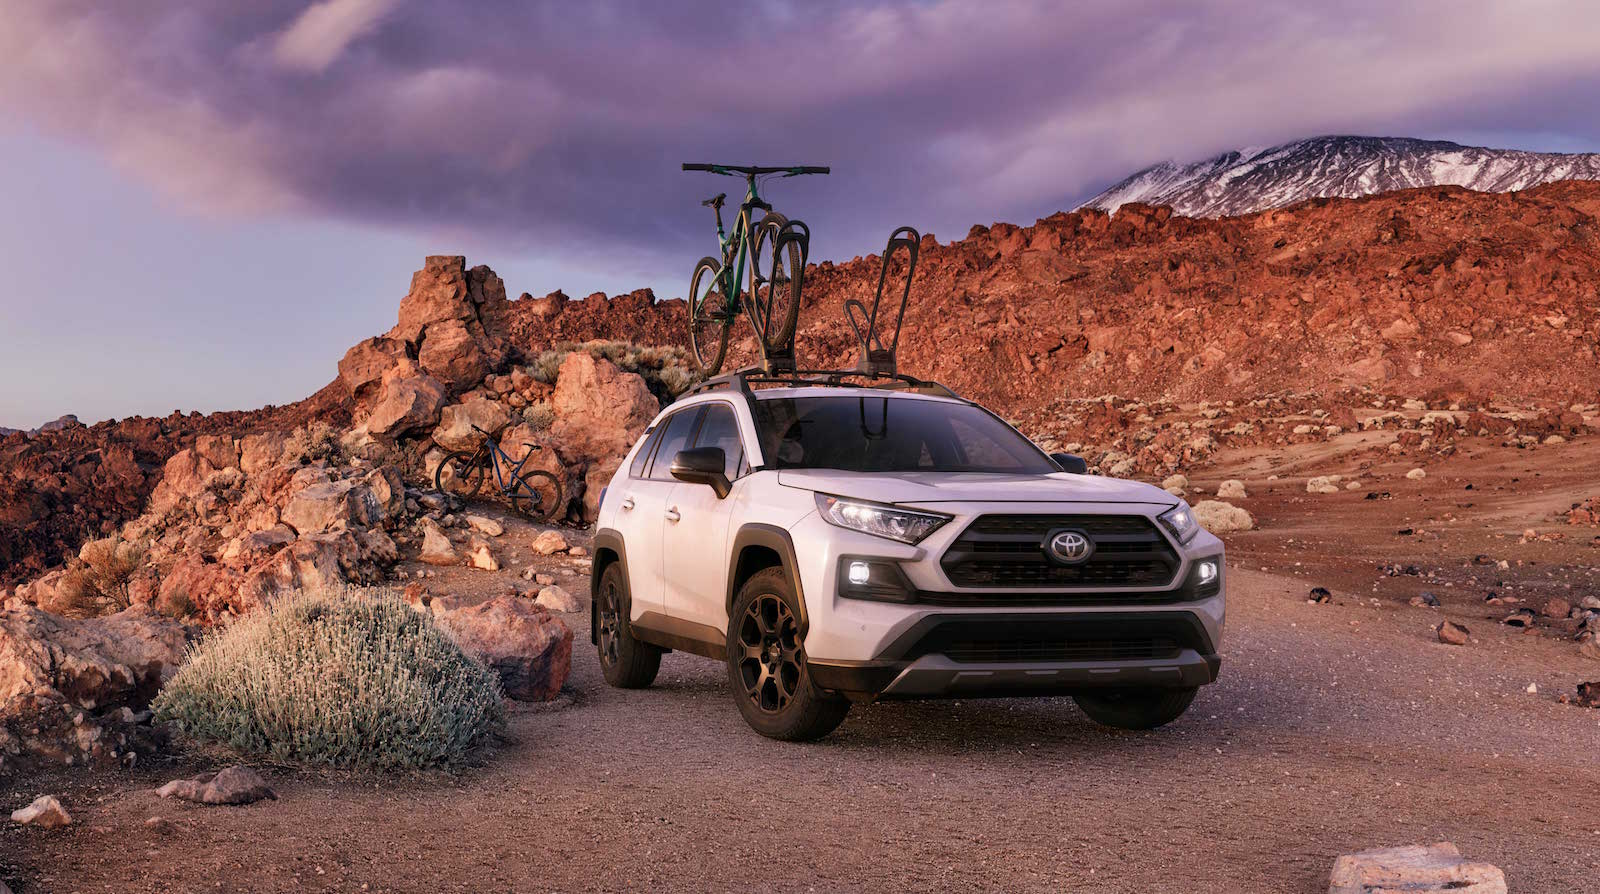 2020 Toyota Rav4 Trd Off Road Is The Most Rugged Rav4 Yet